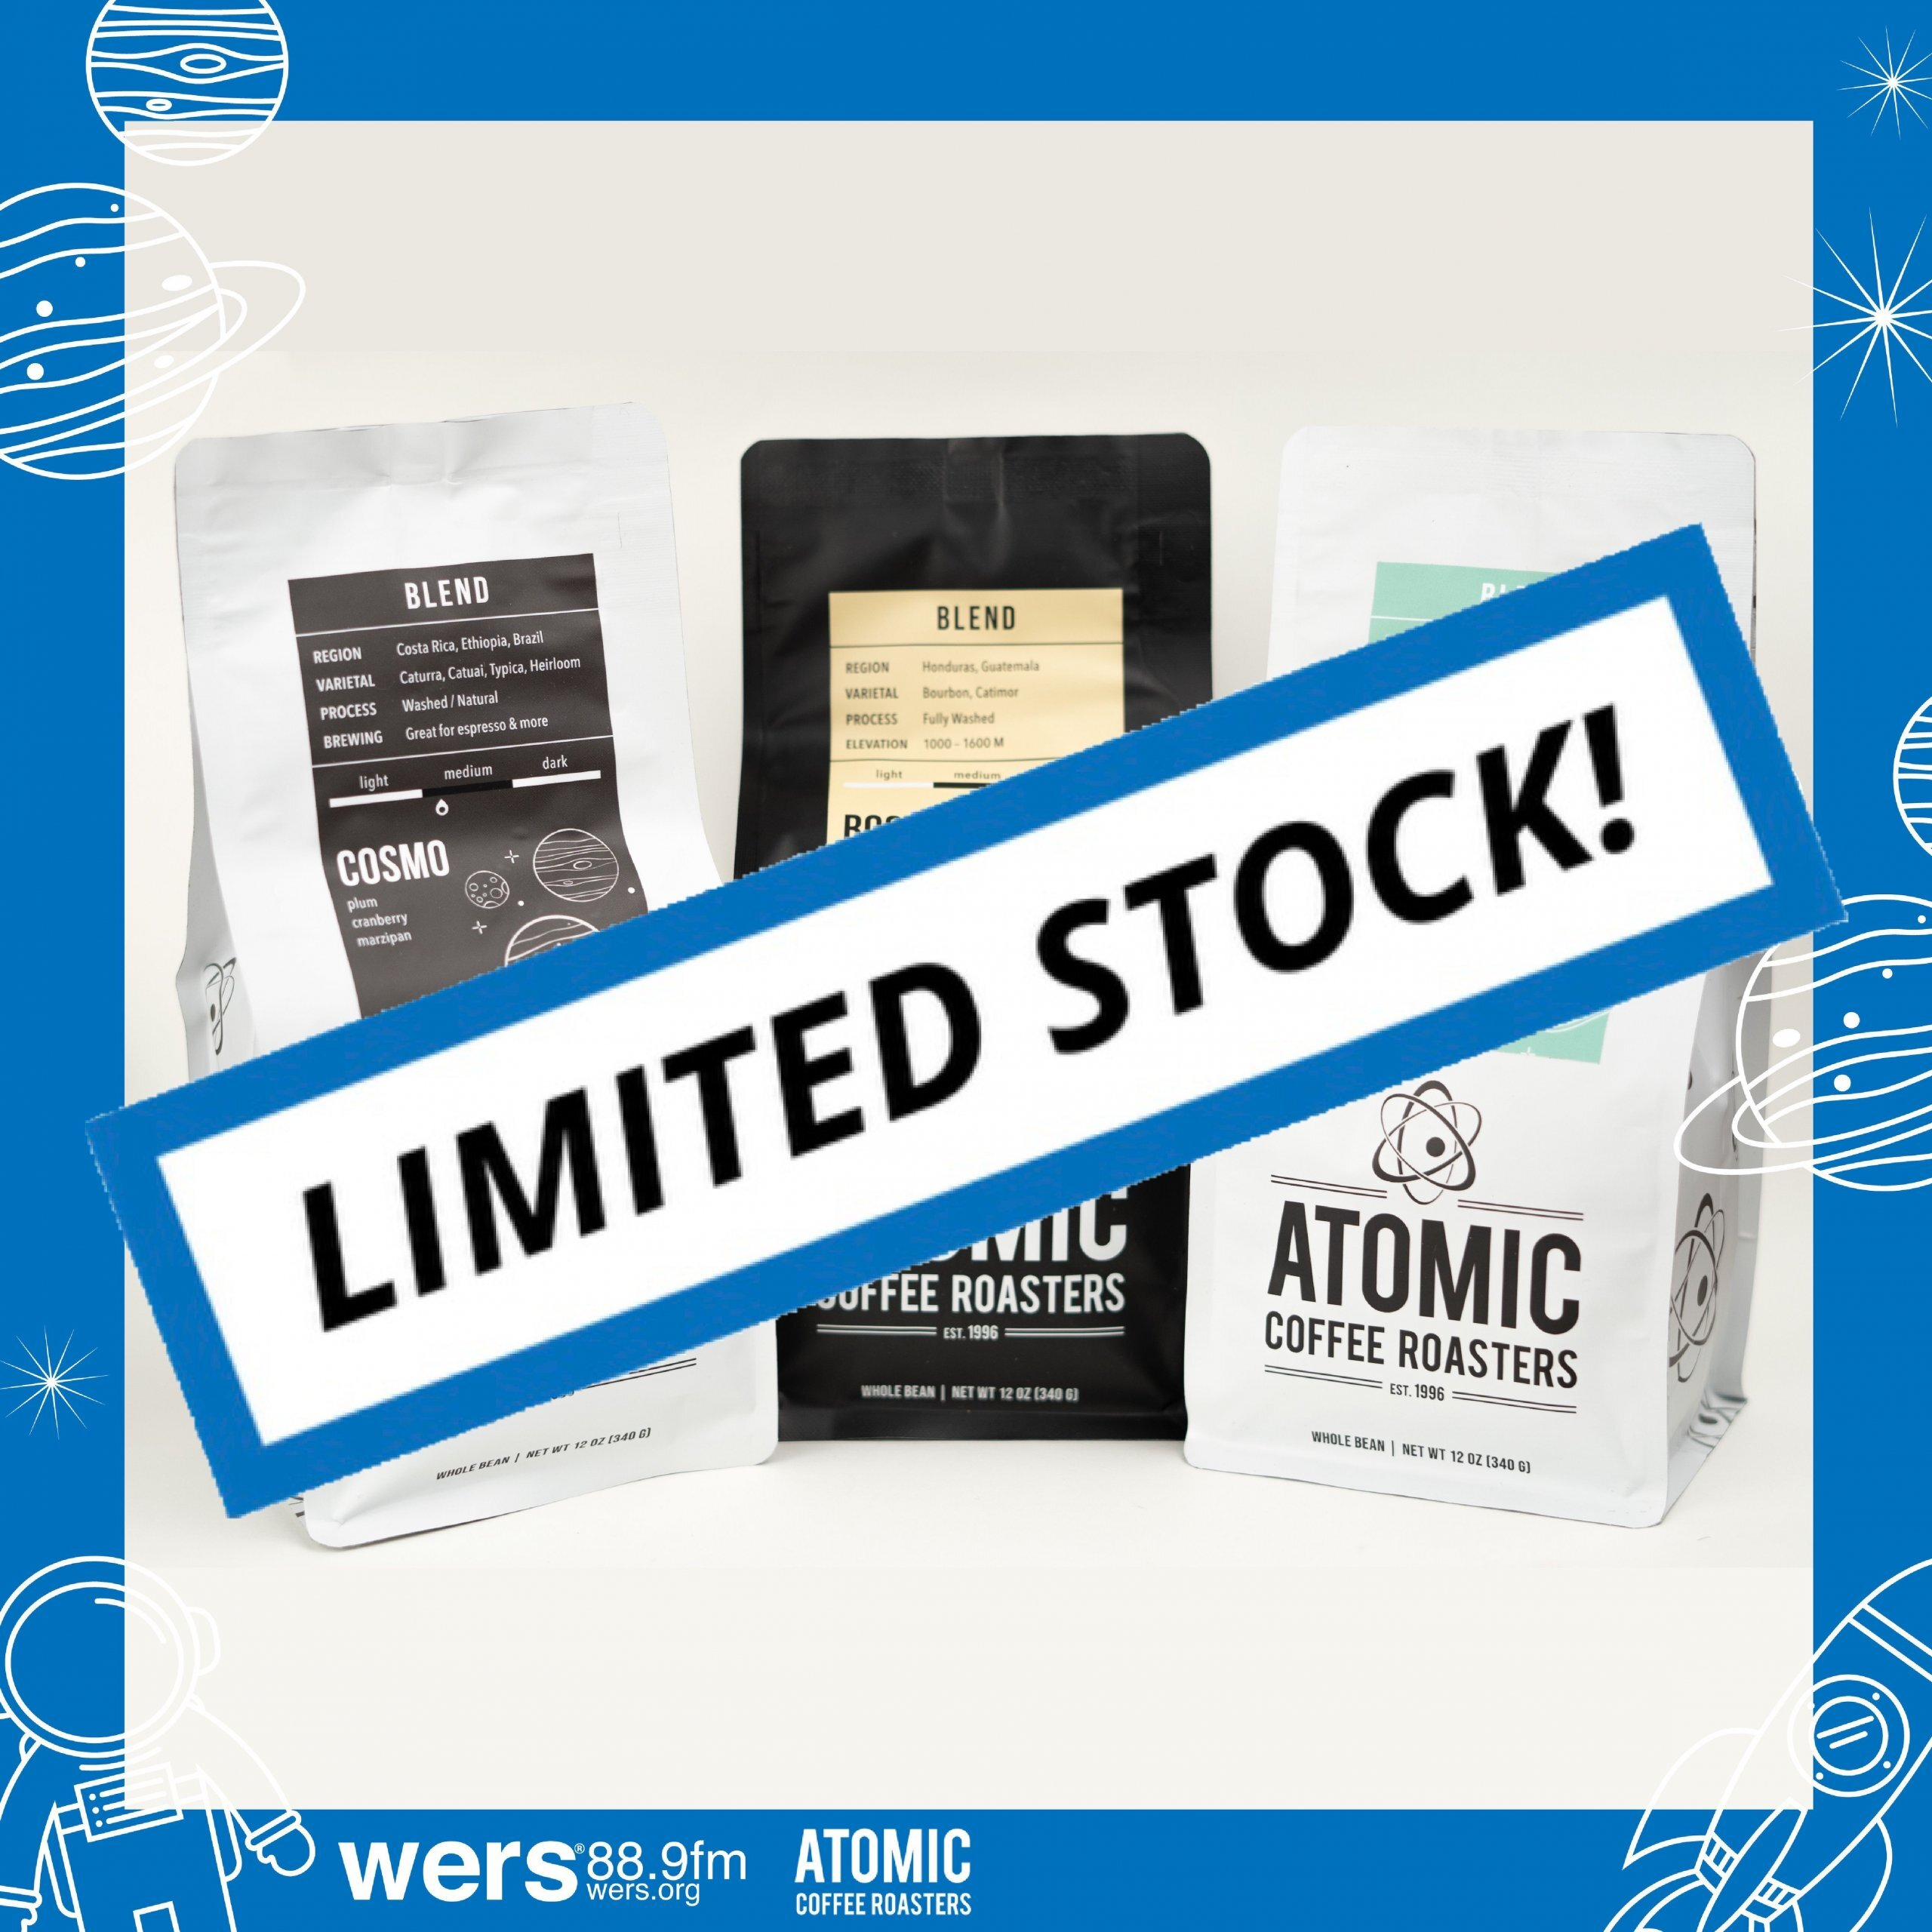 Atomic Coffee 2021 Out of this World Sampler Limited Stock